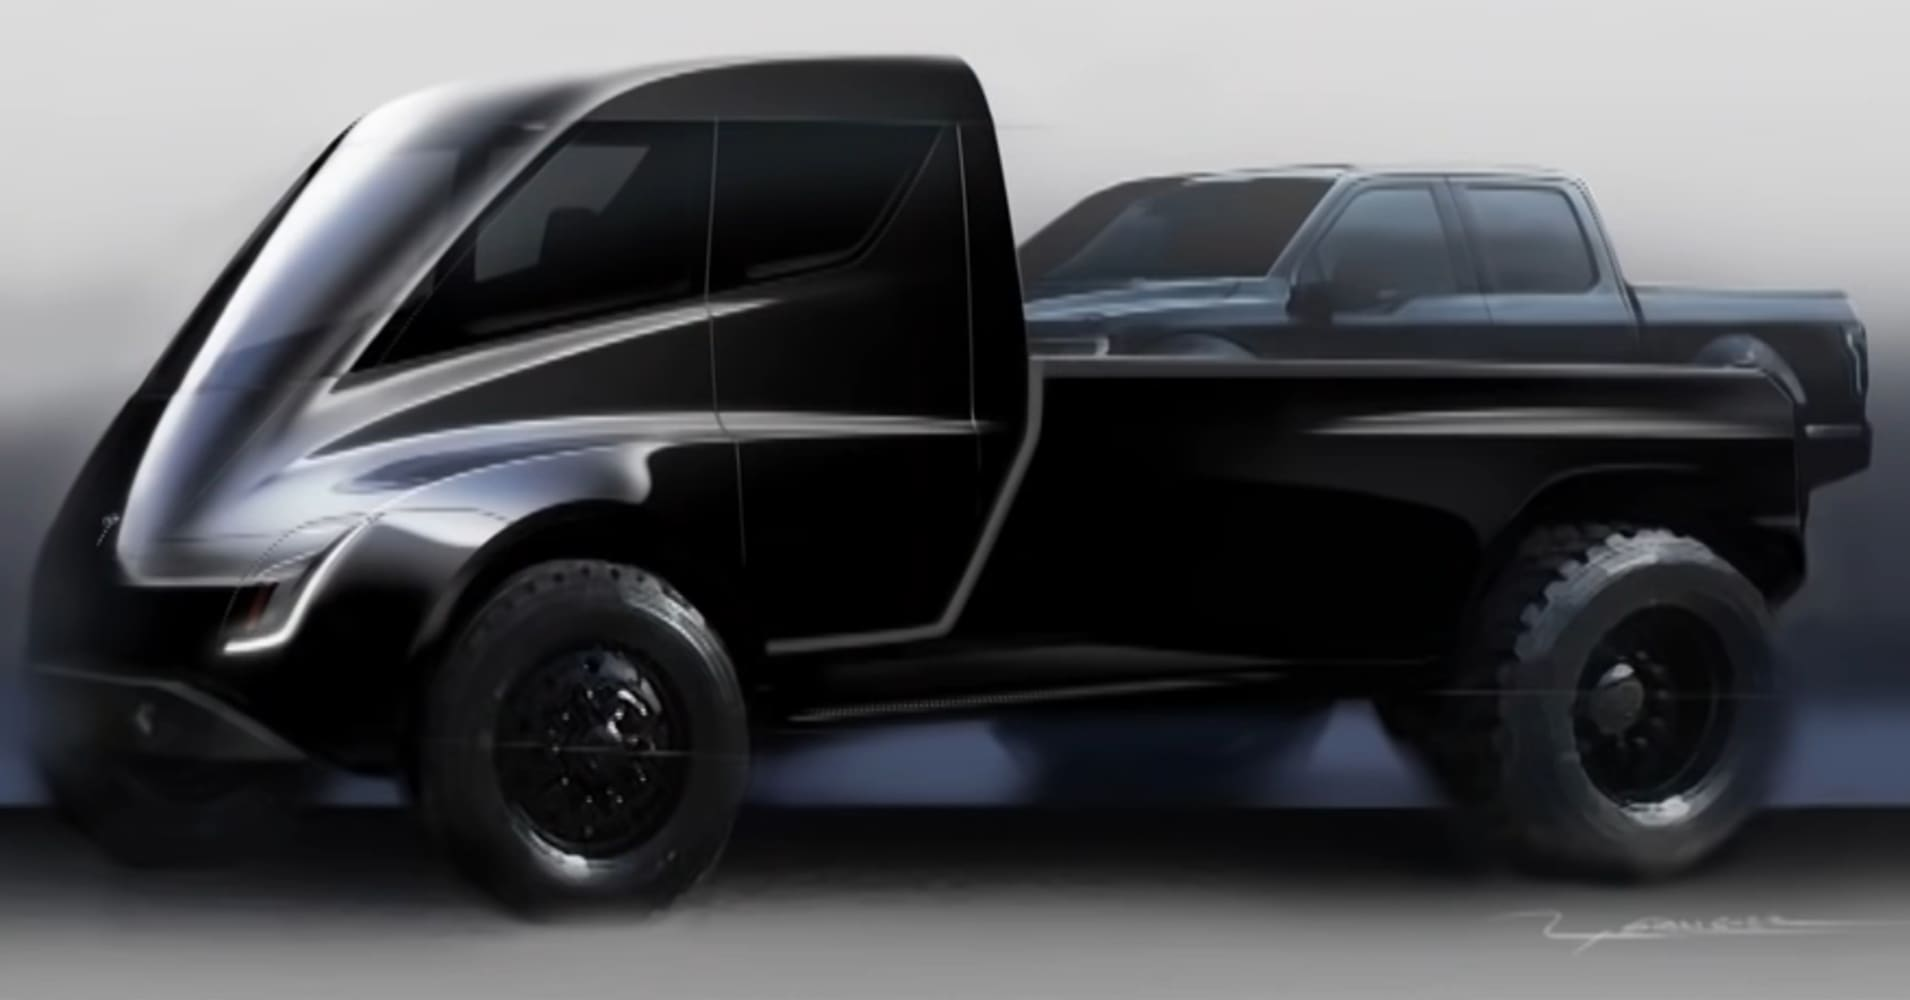 Elon Musk tweets fans might see a Tesla pickup truck next year